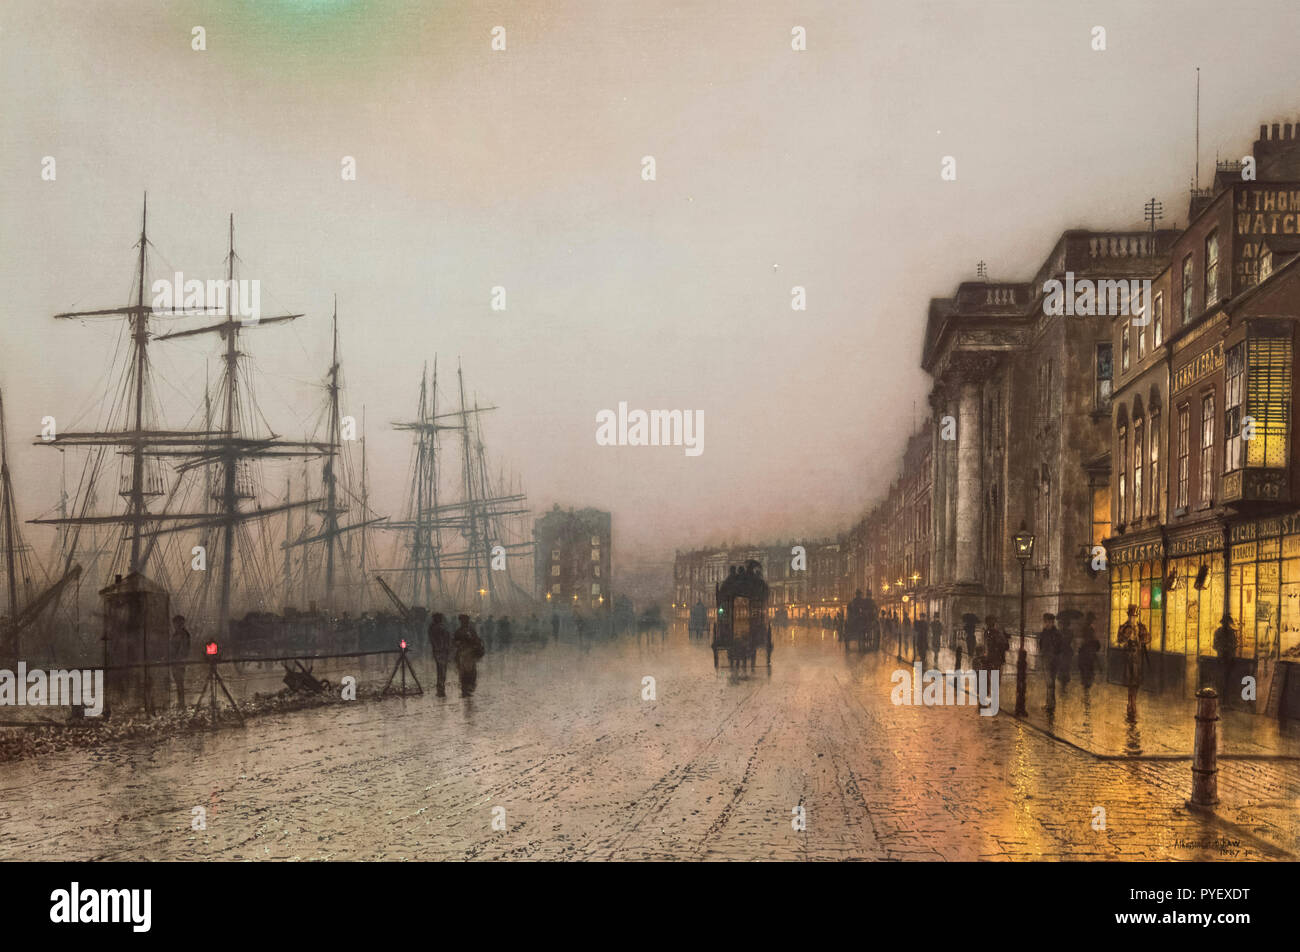 Canny Glasgow by John Atkinson Grimshaw (1836-1893), oil on canvas, 1887 - Stock Image